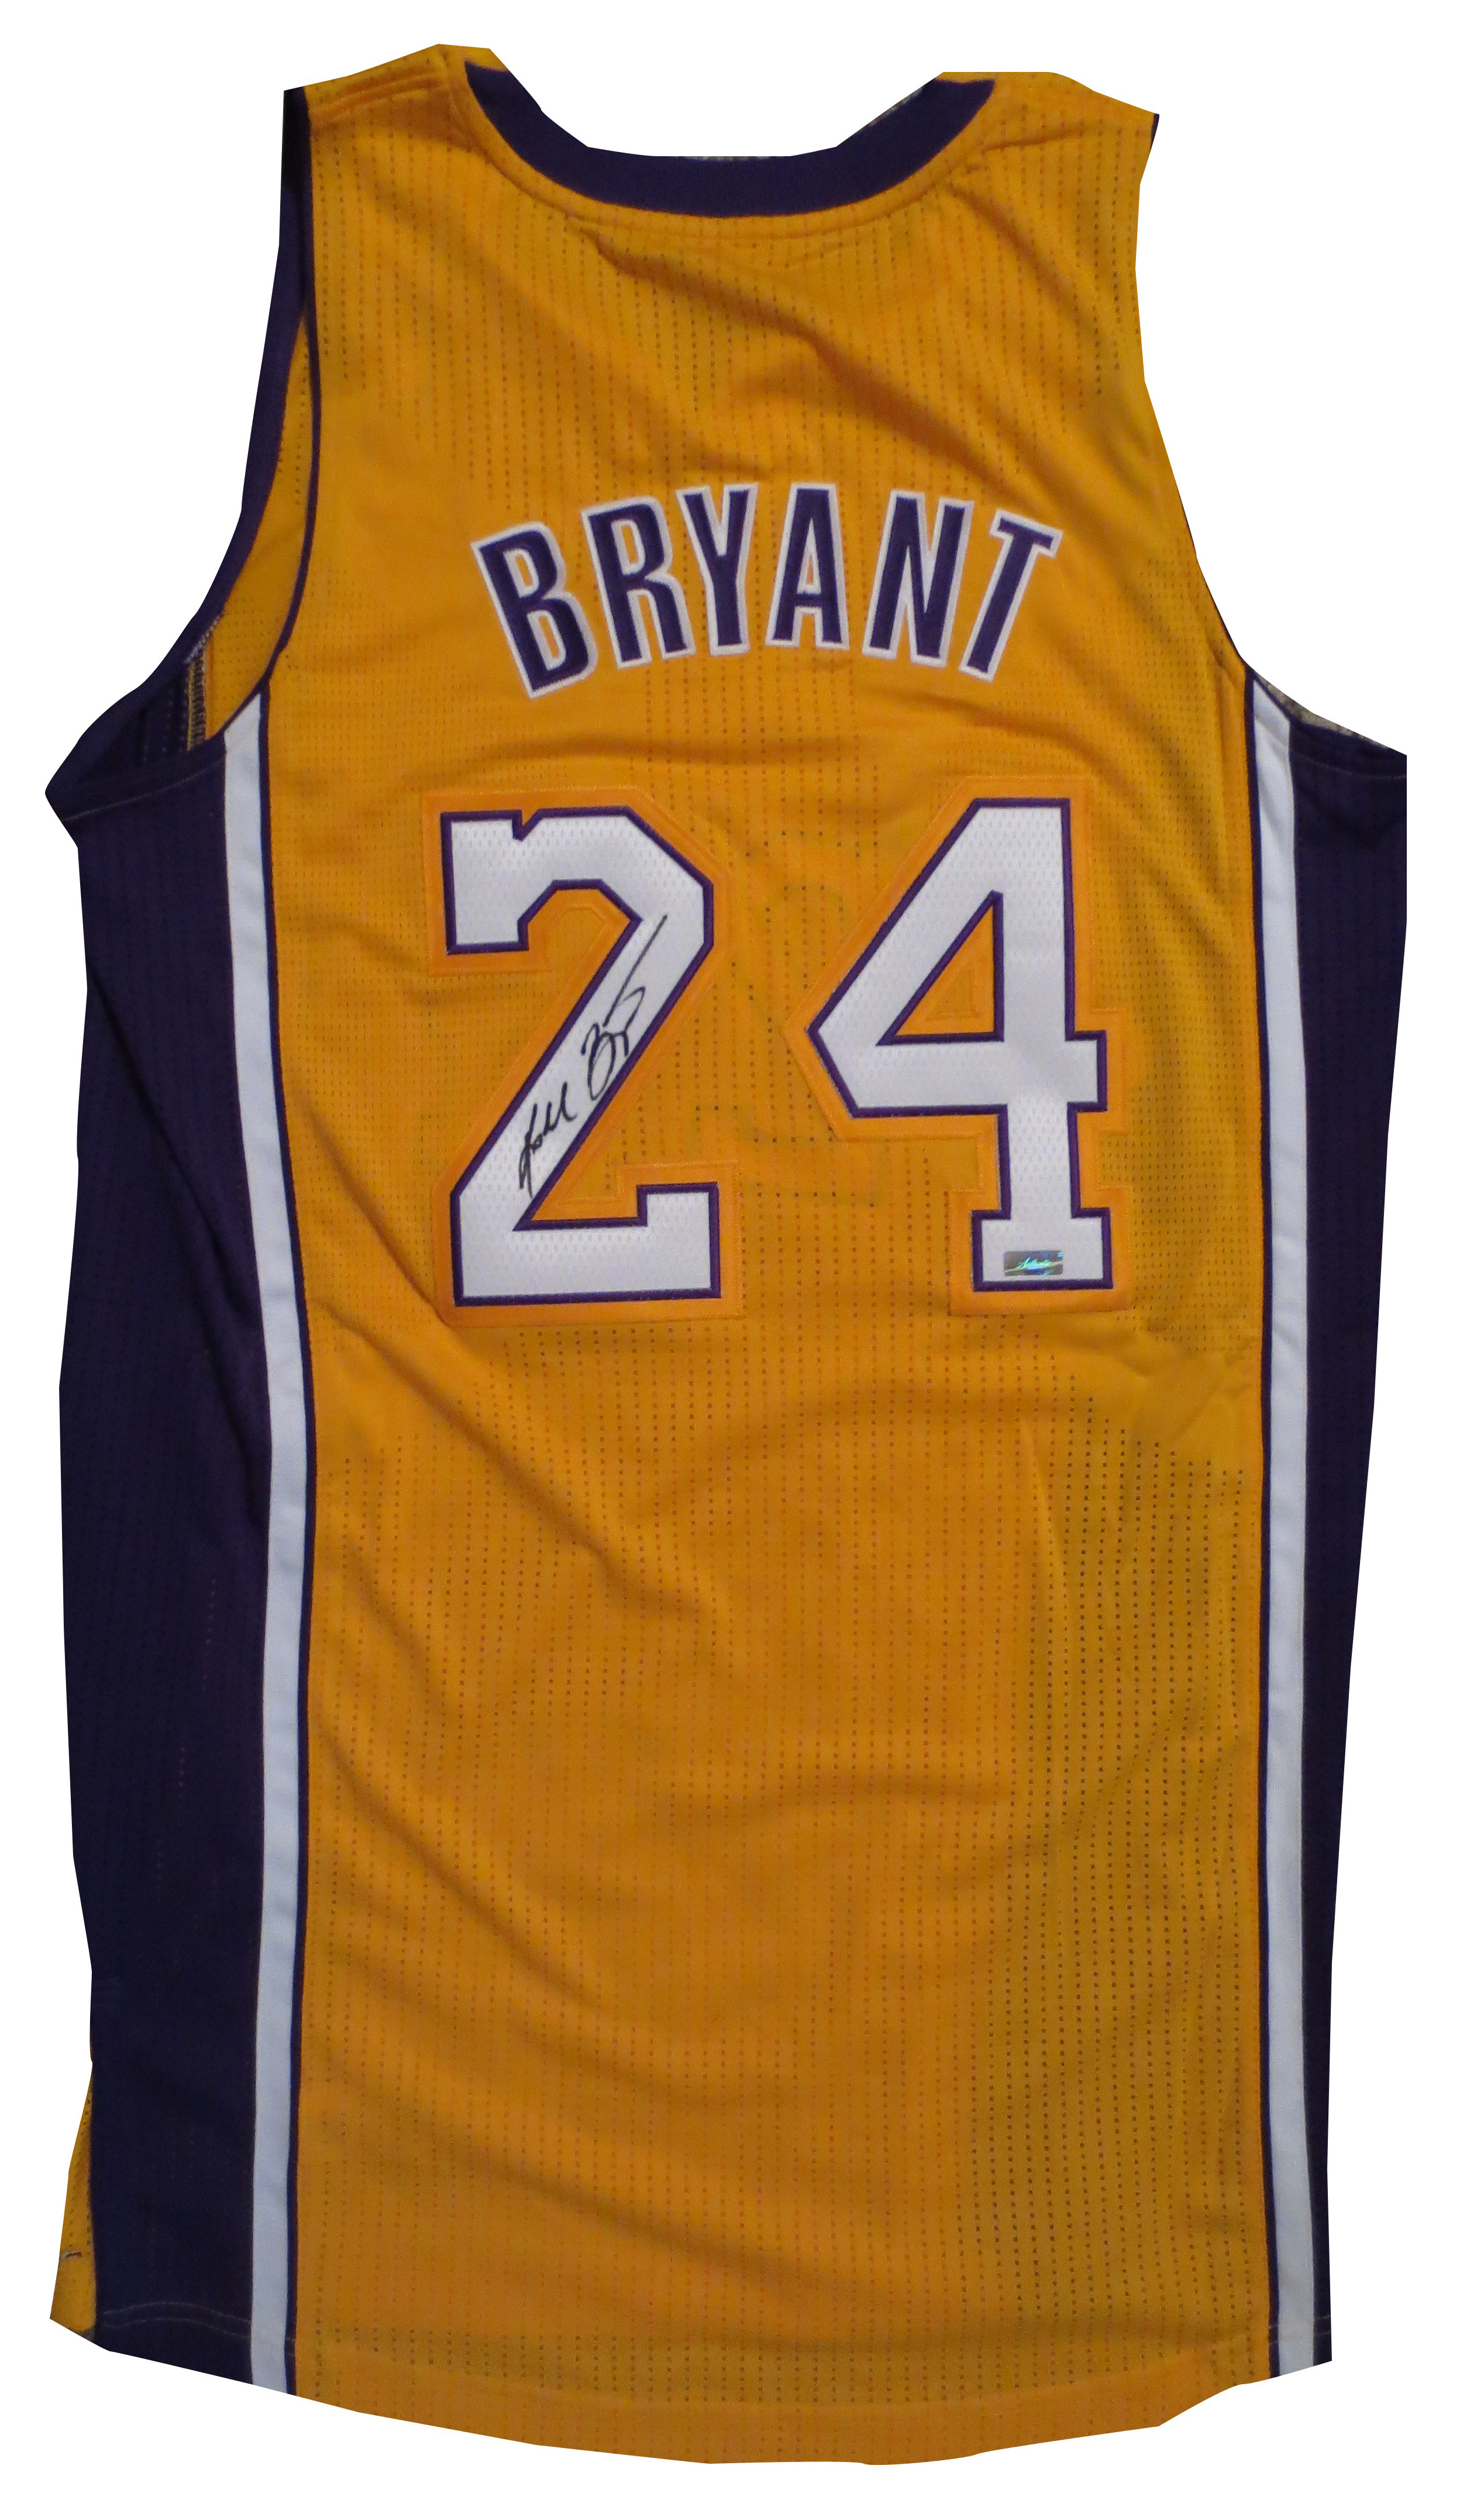 Signed kobe jersey for sale cheap